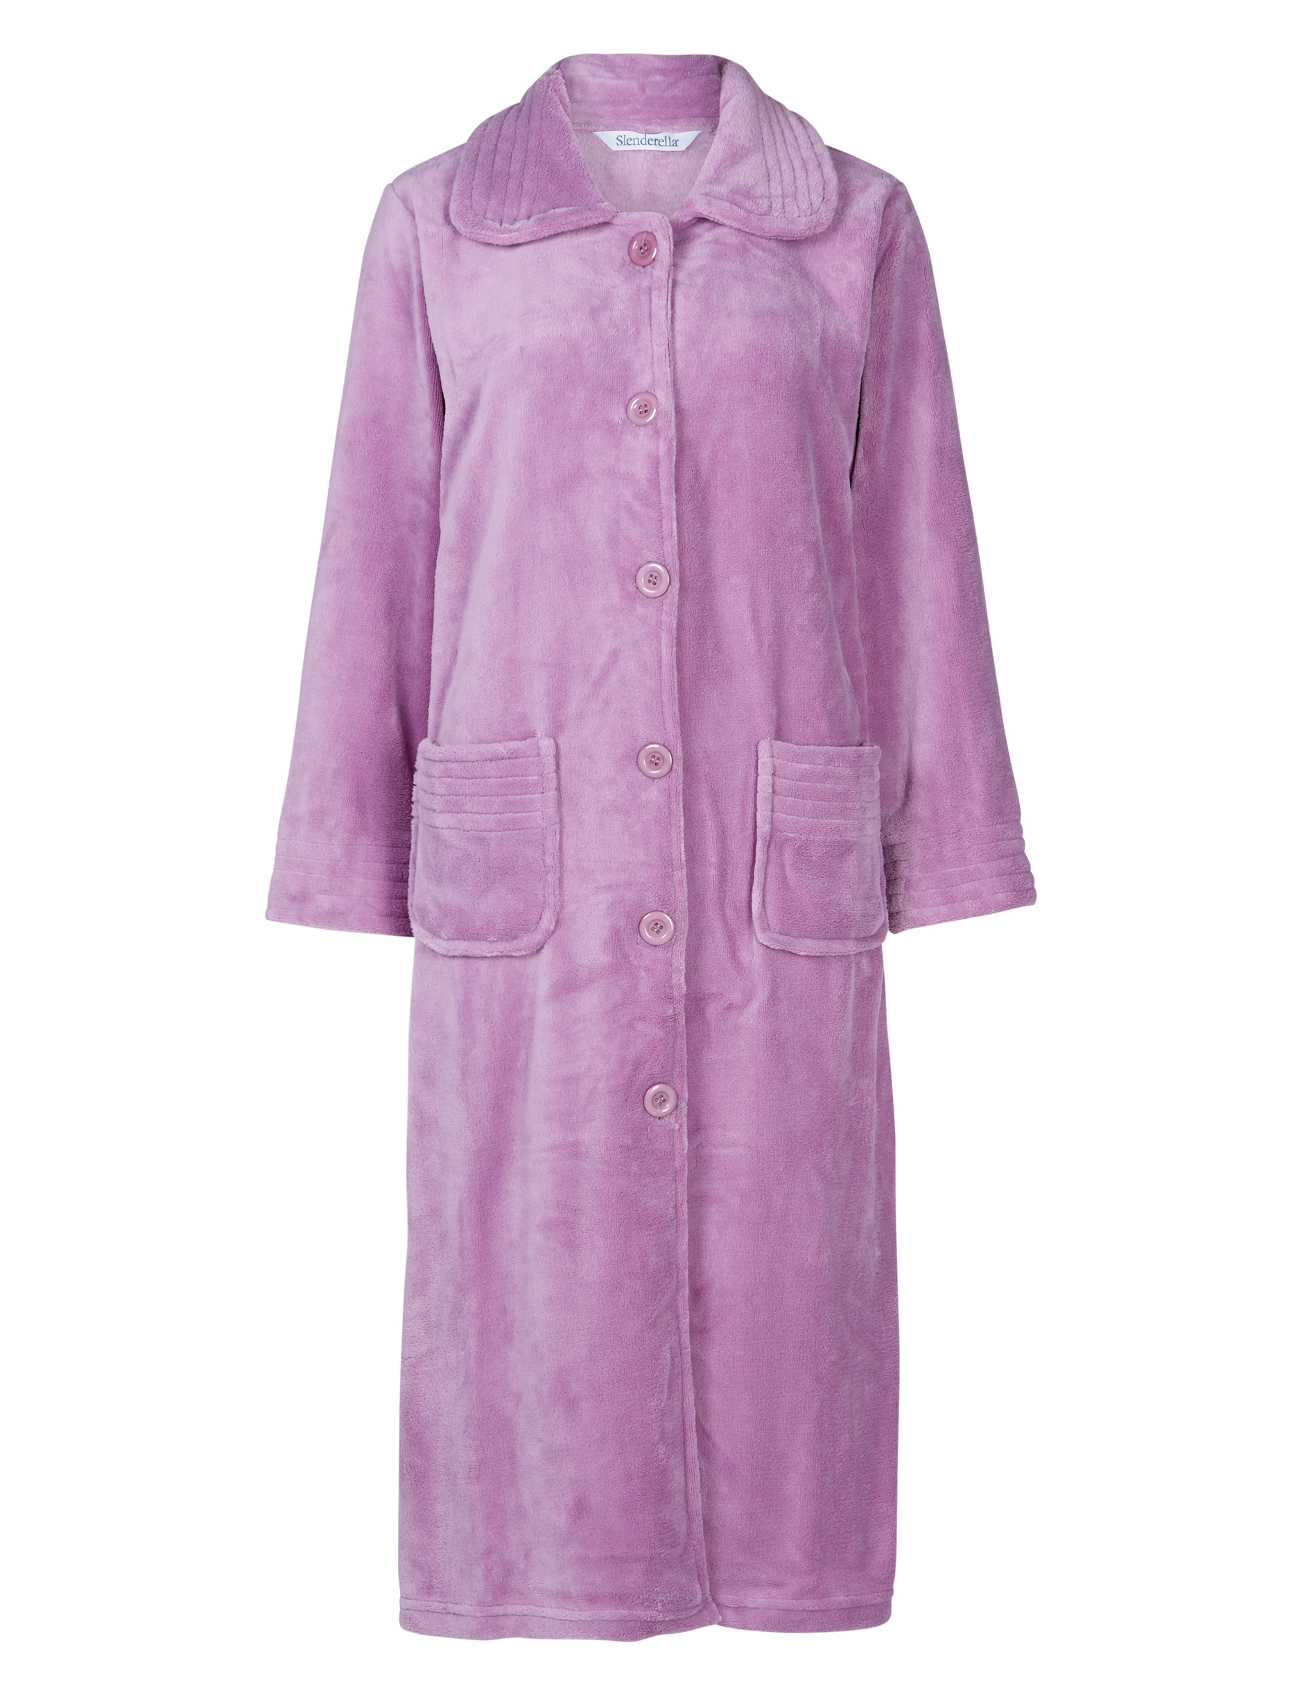 Dressing Gown Womens Button Up Soft Fleecy Plain Bath Robe ...